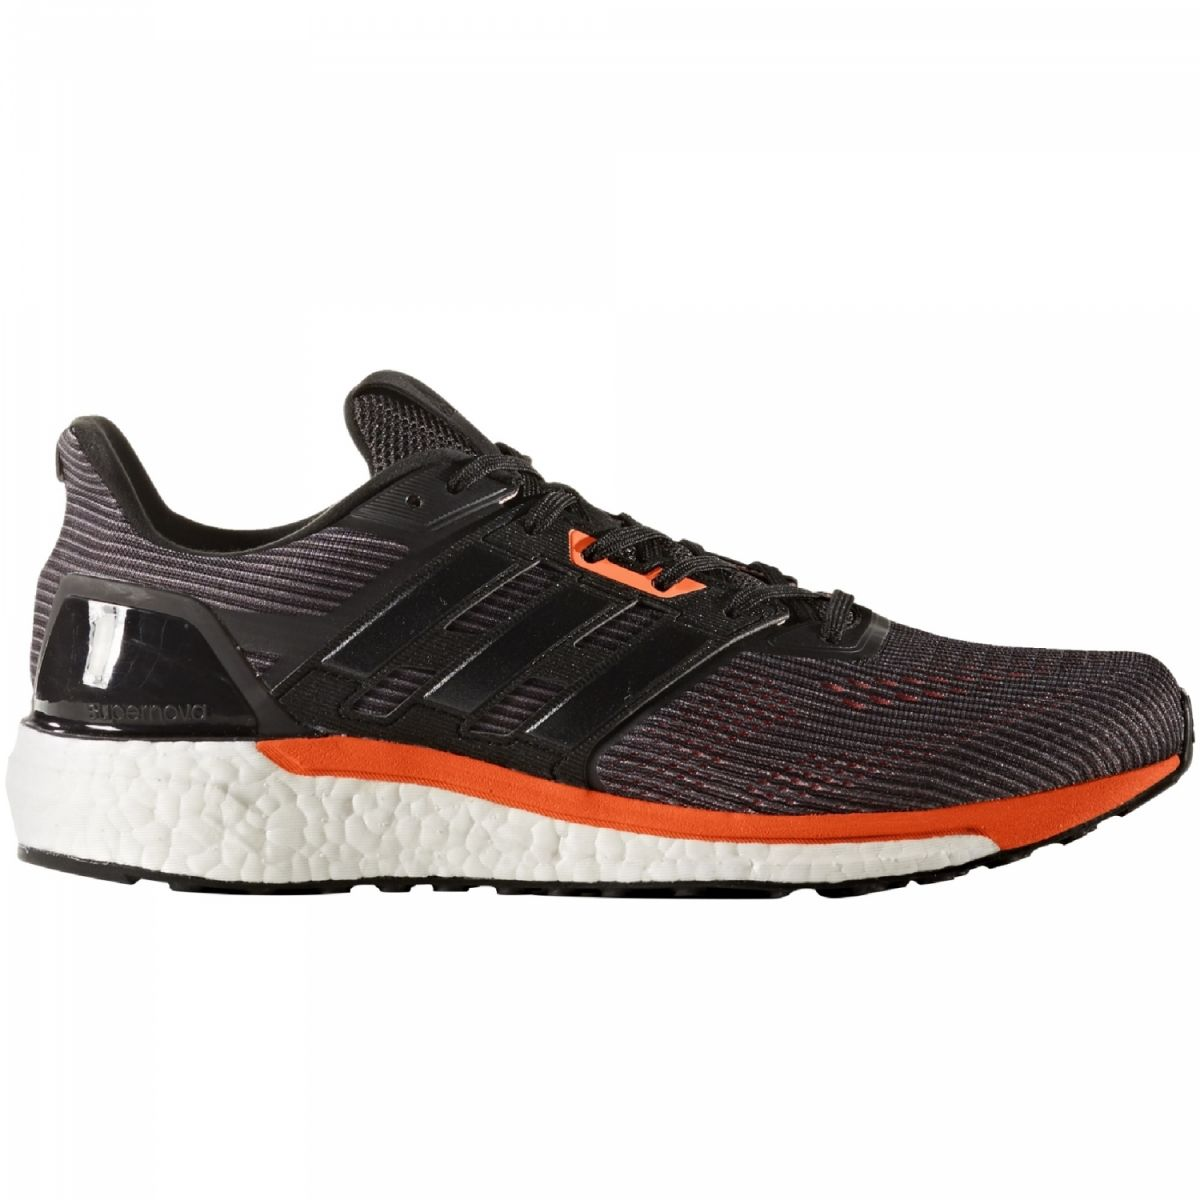 adidas supernova herren laufschuhe running schwarz orange bb3473 sport klingenmaier. Black Bedroom Furniture Sets. Home Design Ideas